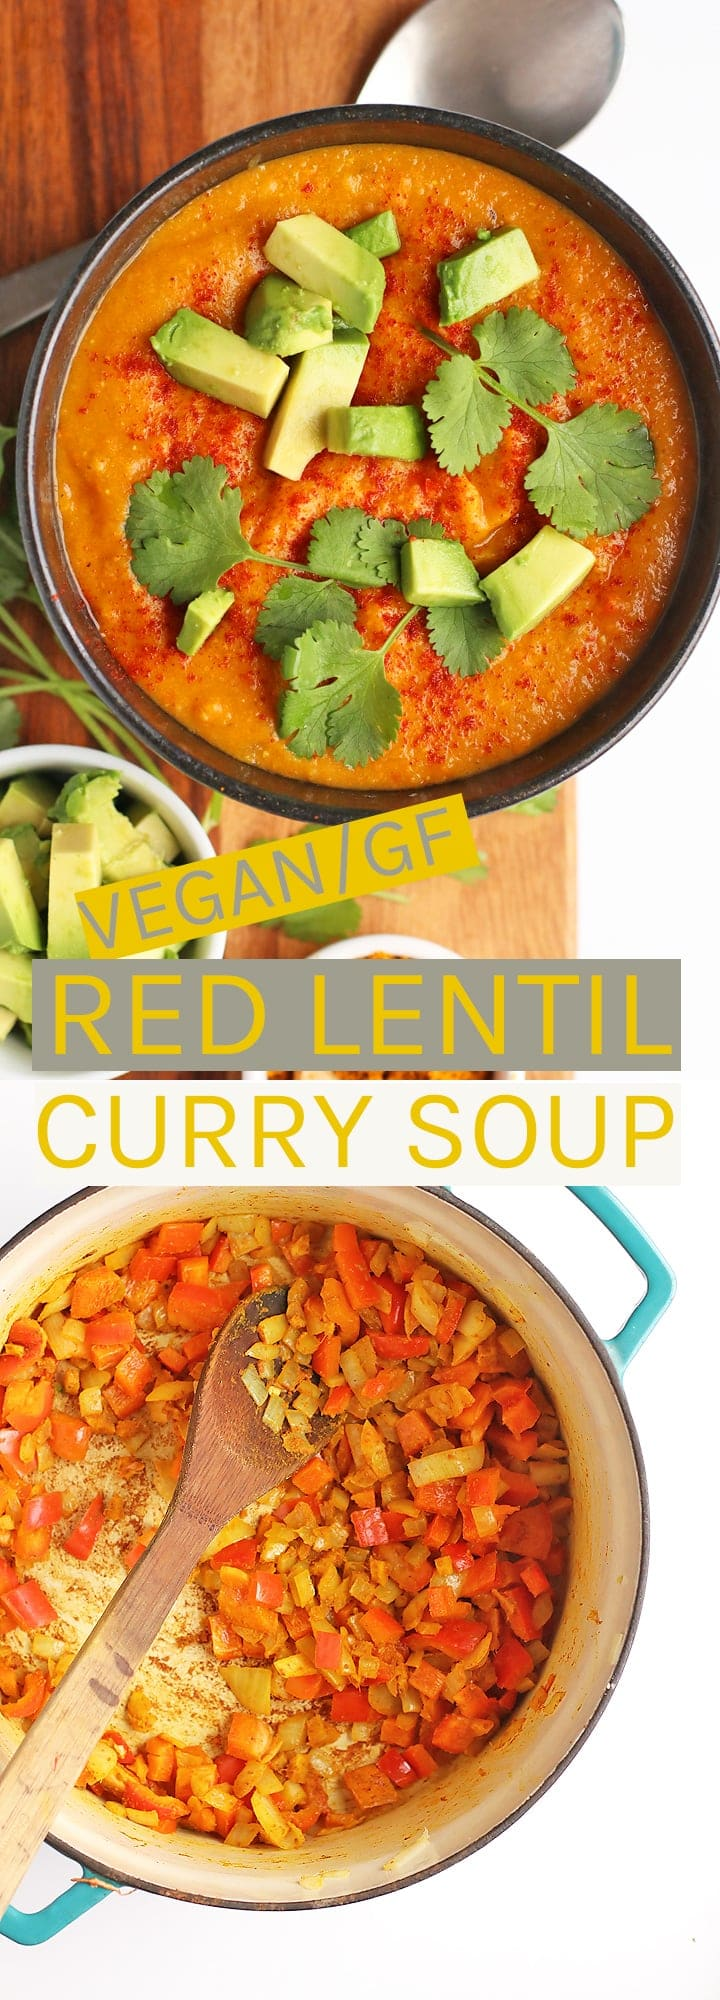 Warm up with this vegan and gluten-free Red Lentil Curry Soup.